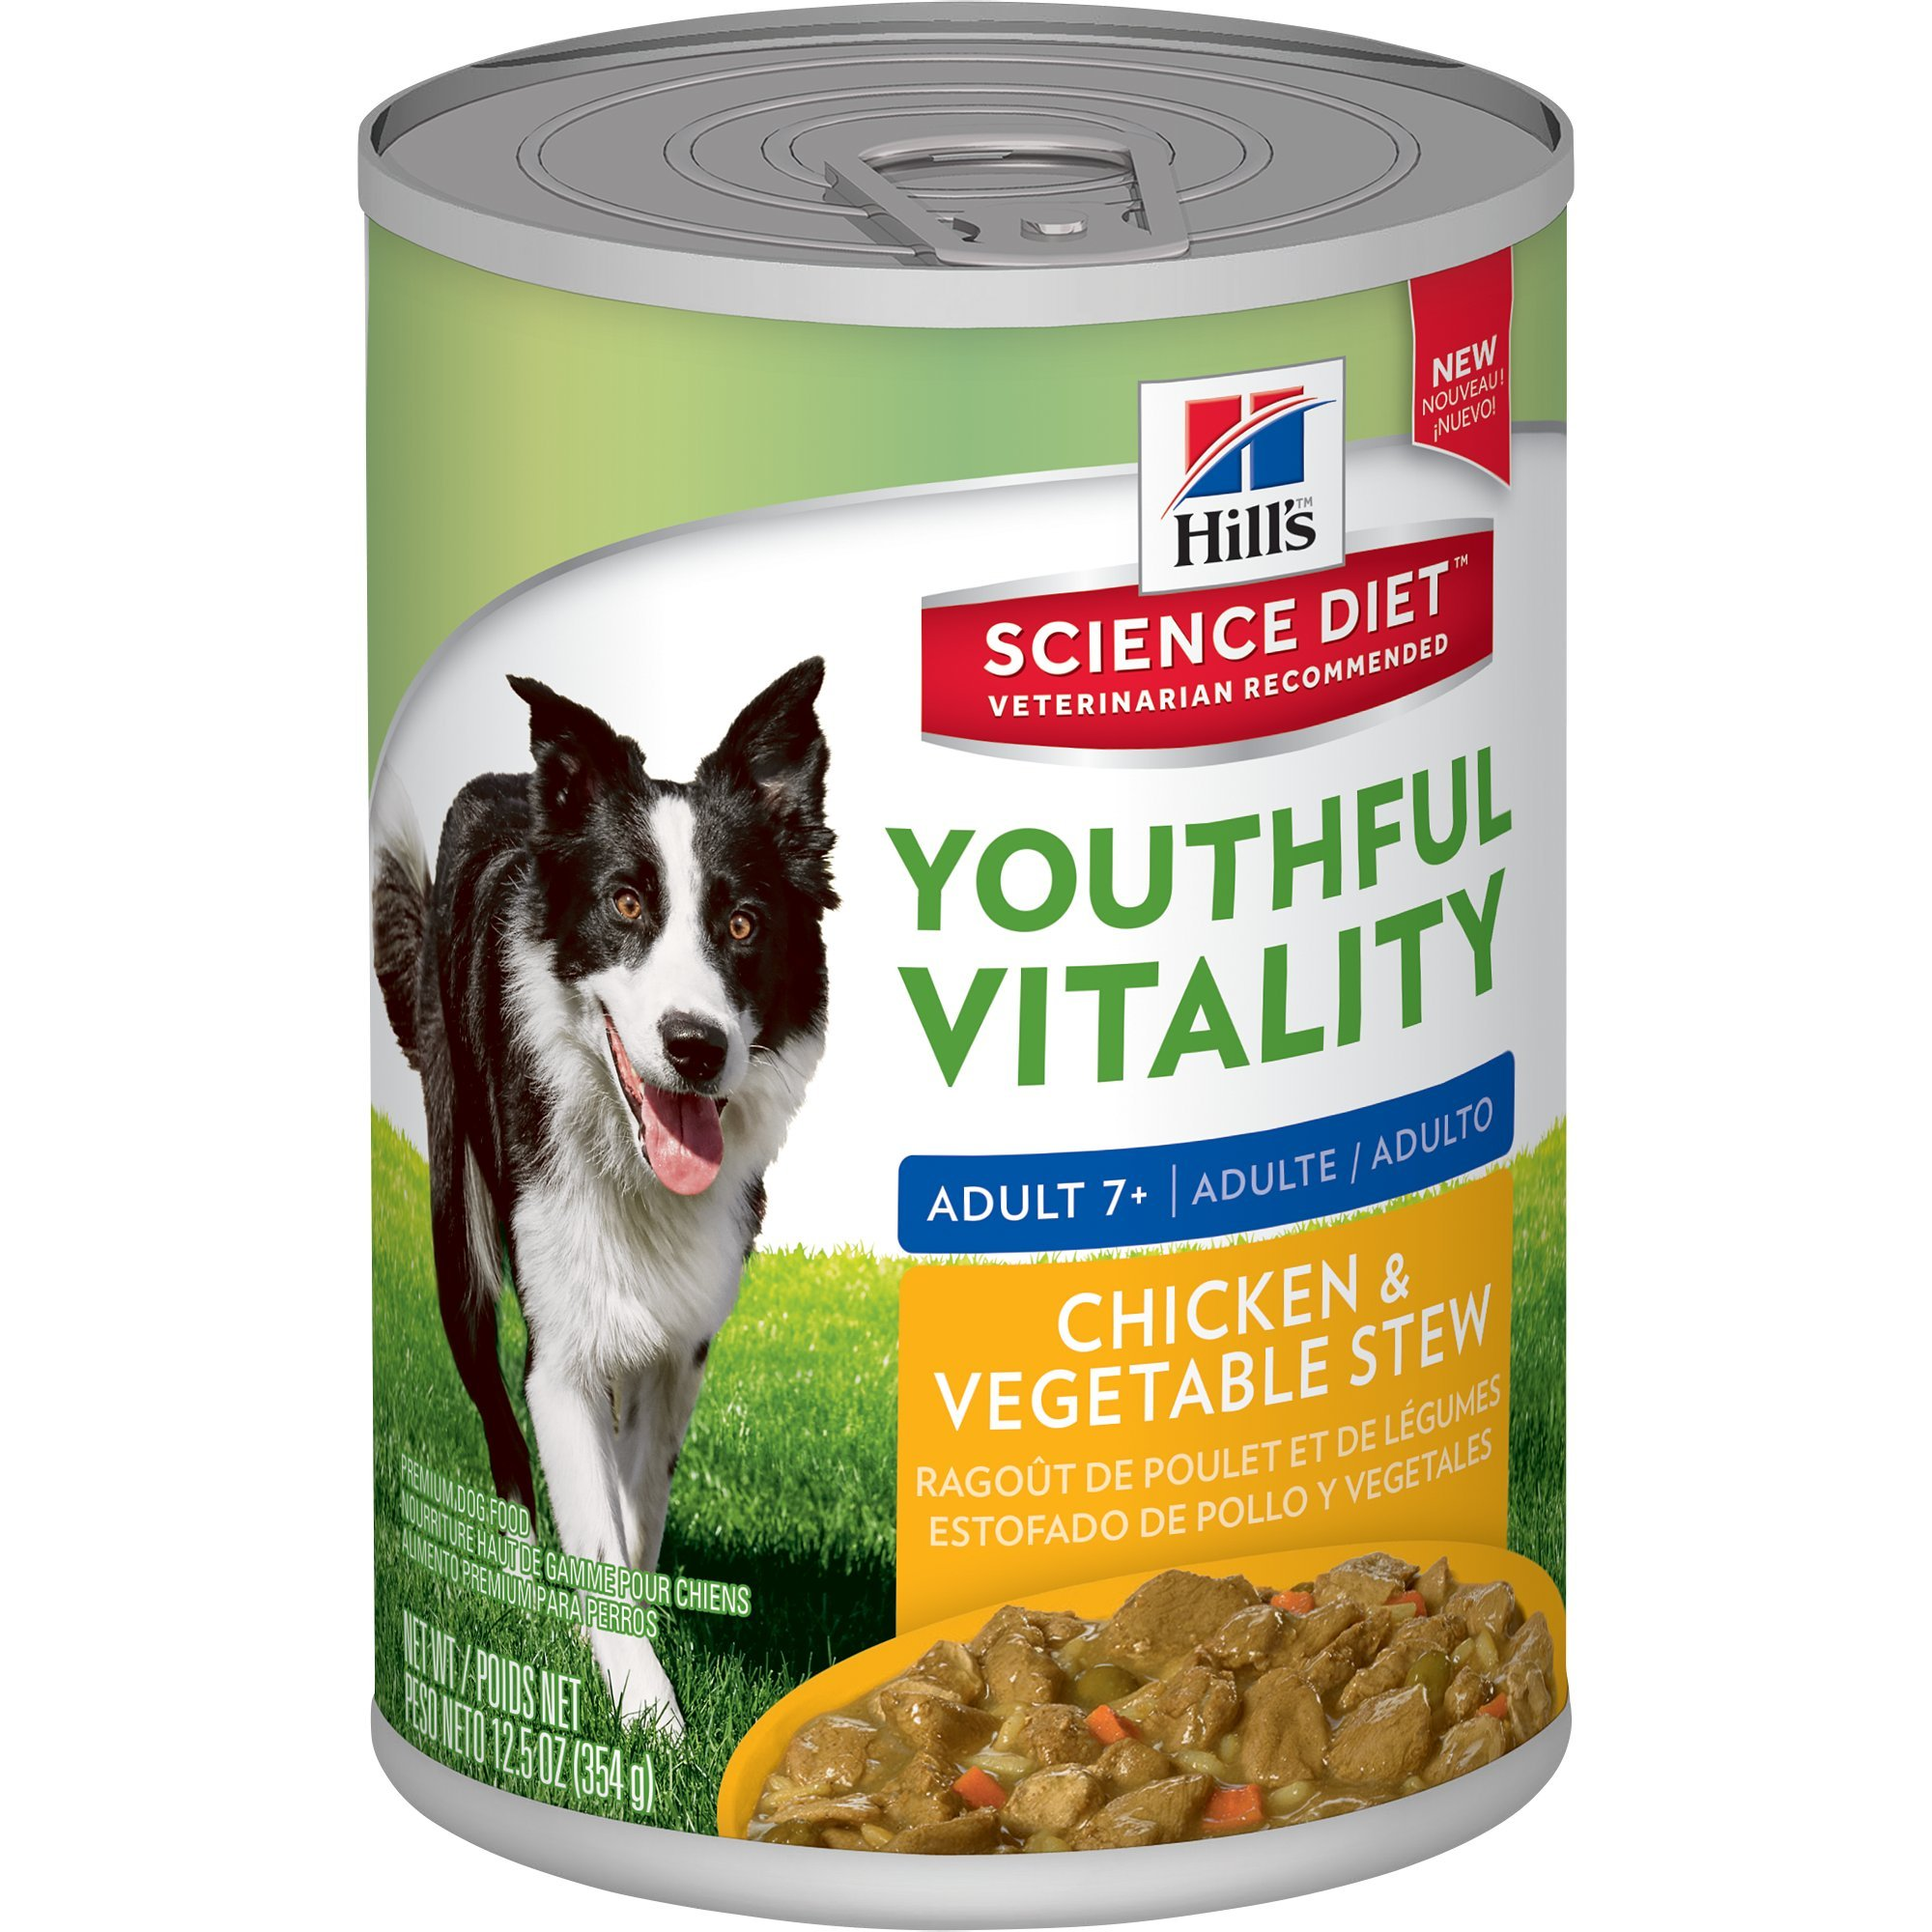 Hill's Science Diet Senior Wet Dog Food, Adult 7+ Youthful Vitality Chicken & Vegetables Stew Canned Dog Food, 12.5 oz, 12 Pack